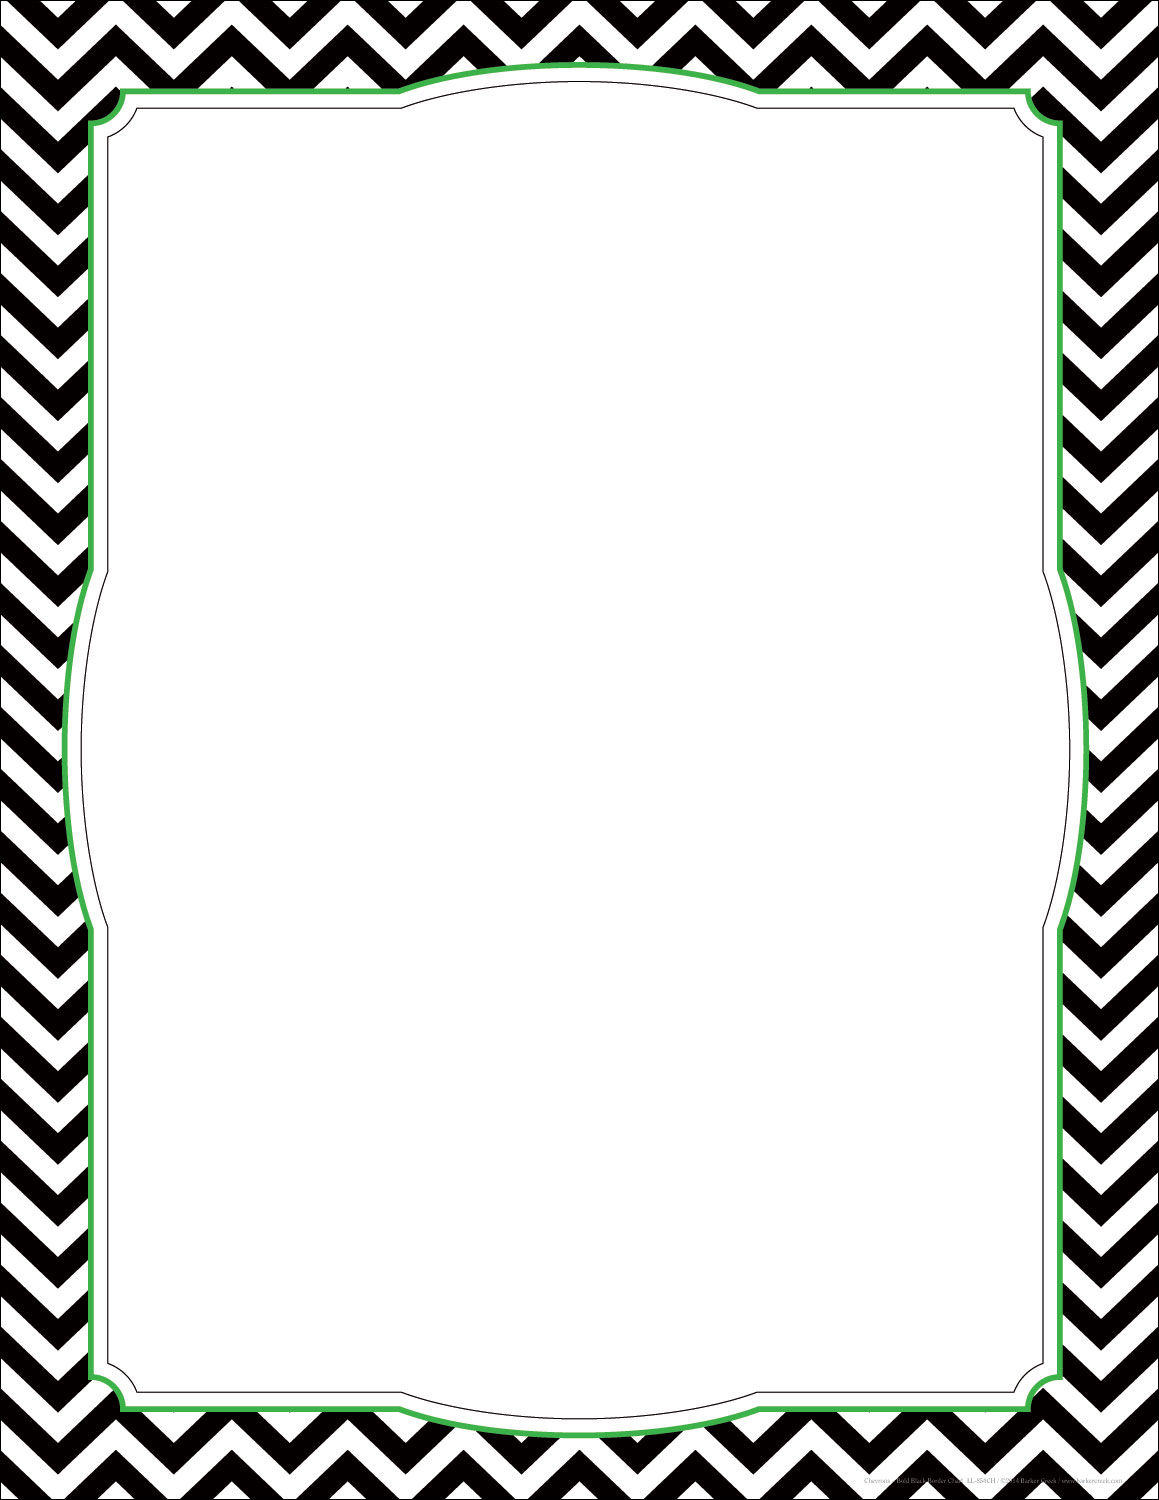 Free Christmas Chevron Cliparts Download Free Clip Art